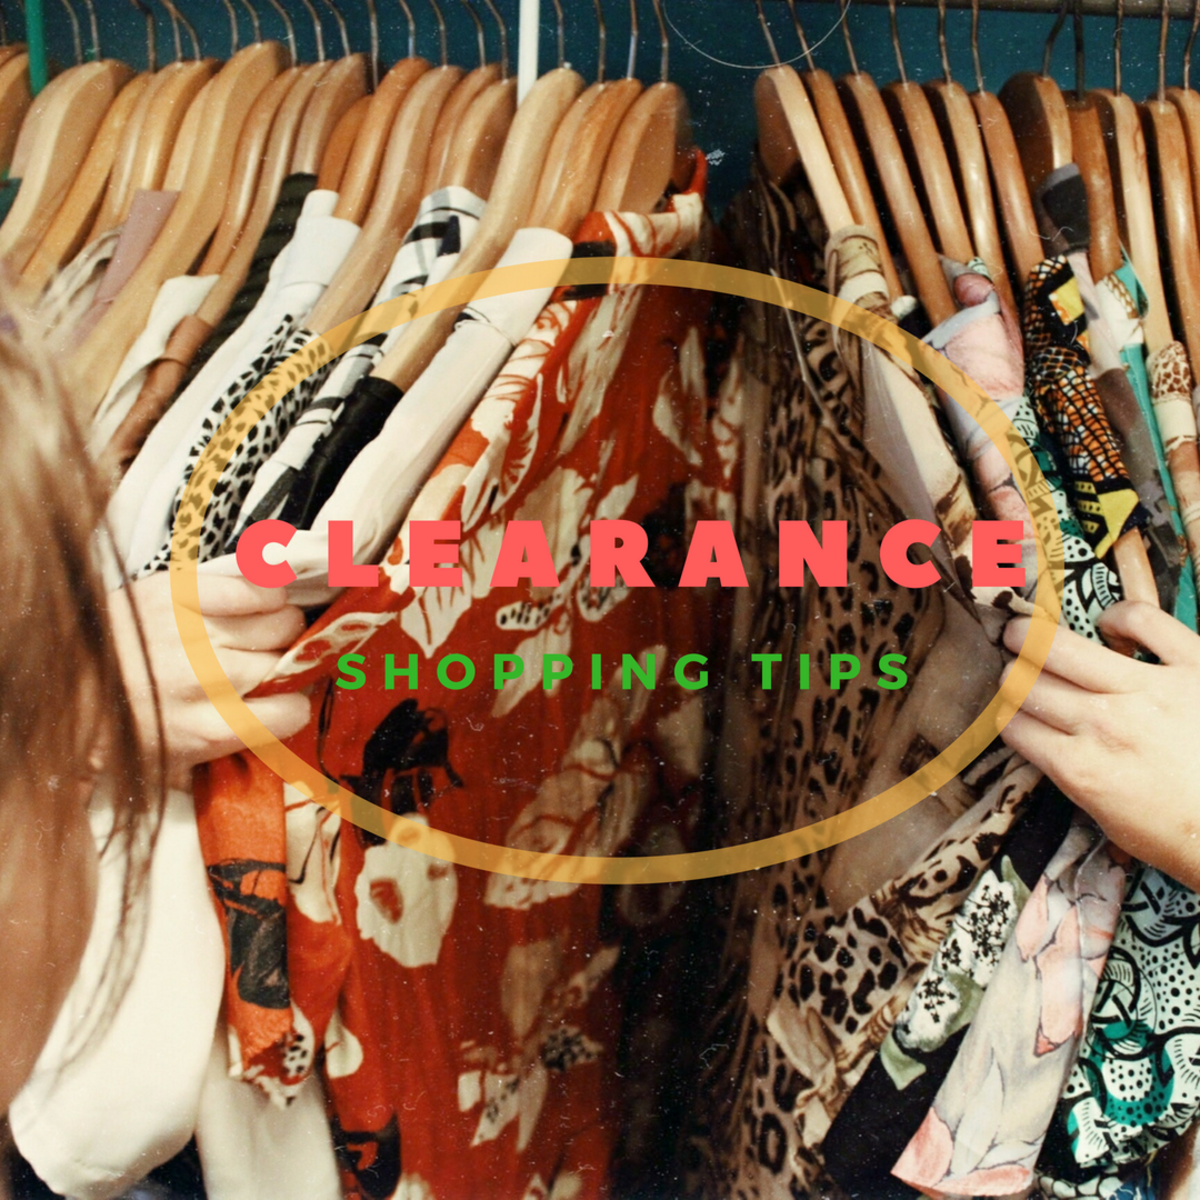 Why I Only Shop on Clearance and Why You Should Too